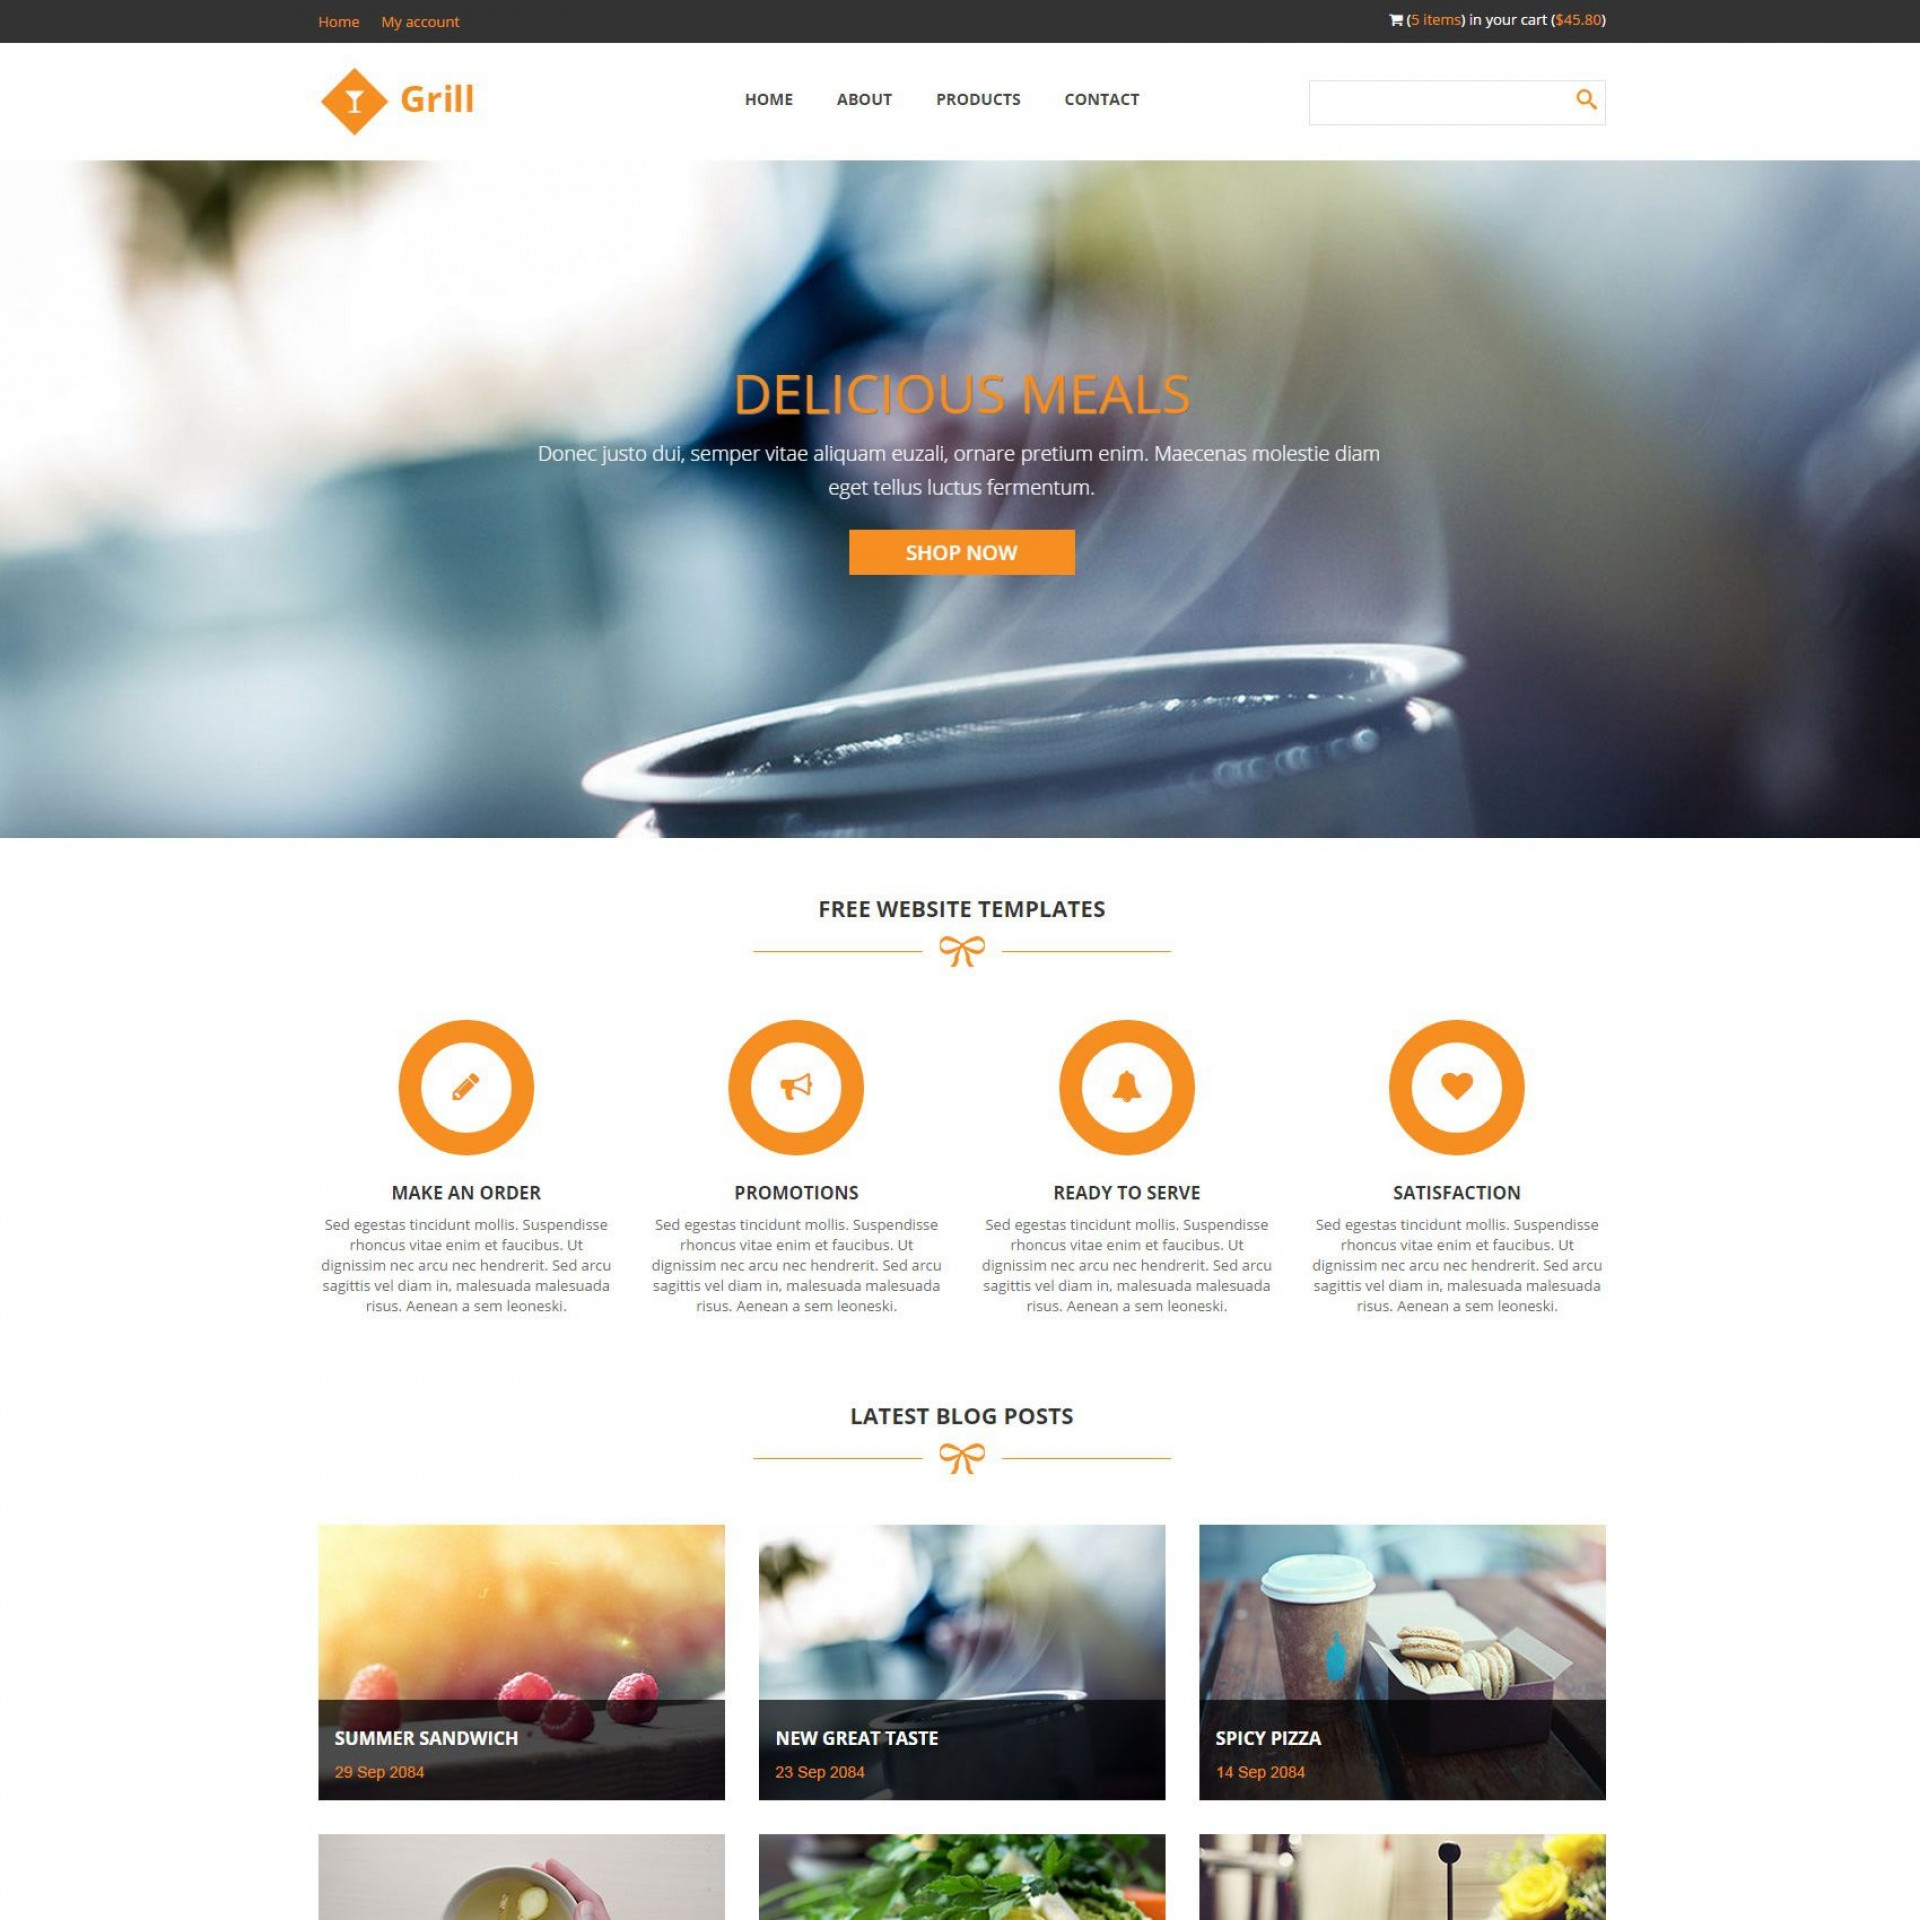 009 Rare Free Responsive Html5 Template High Def  Best Download For School Medical1920